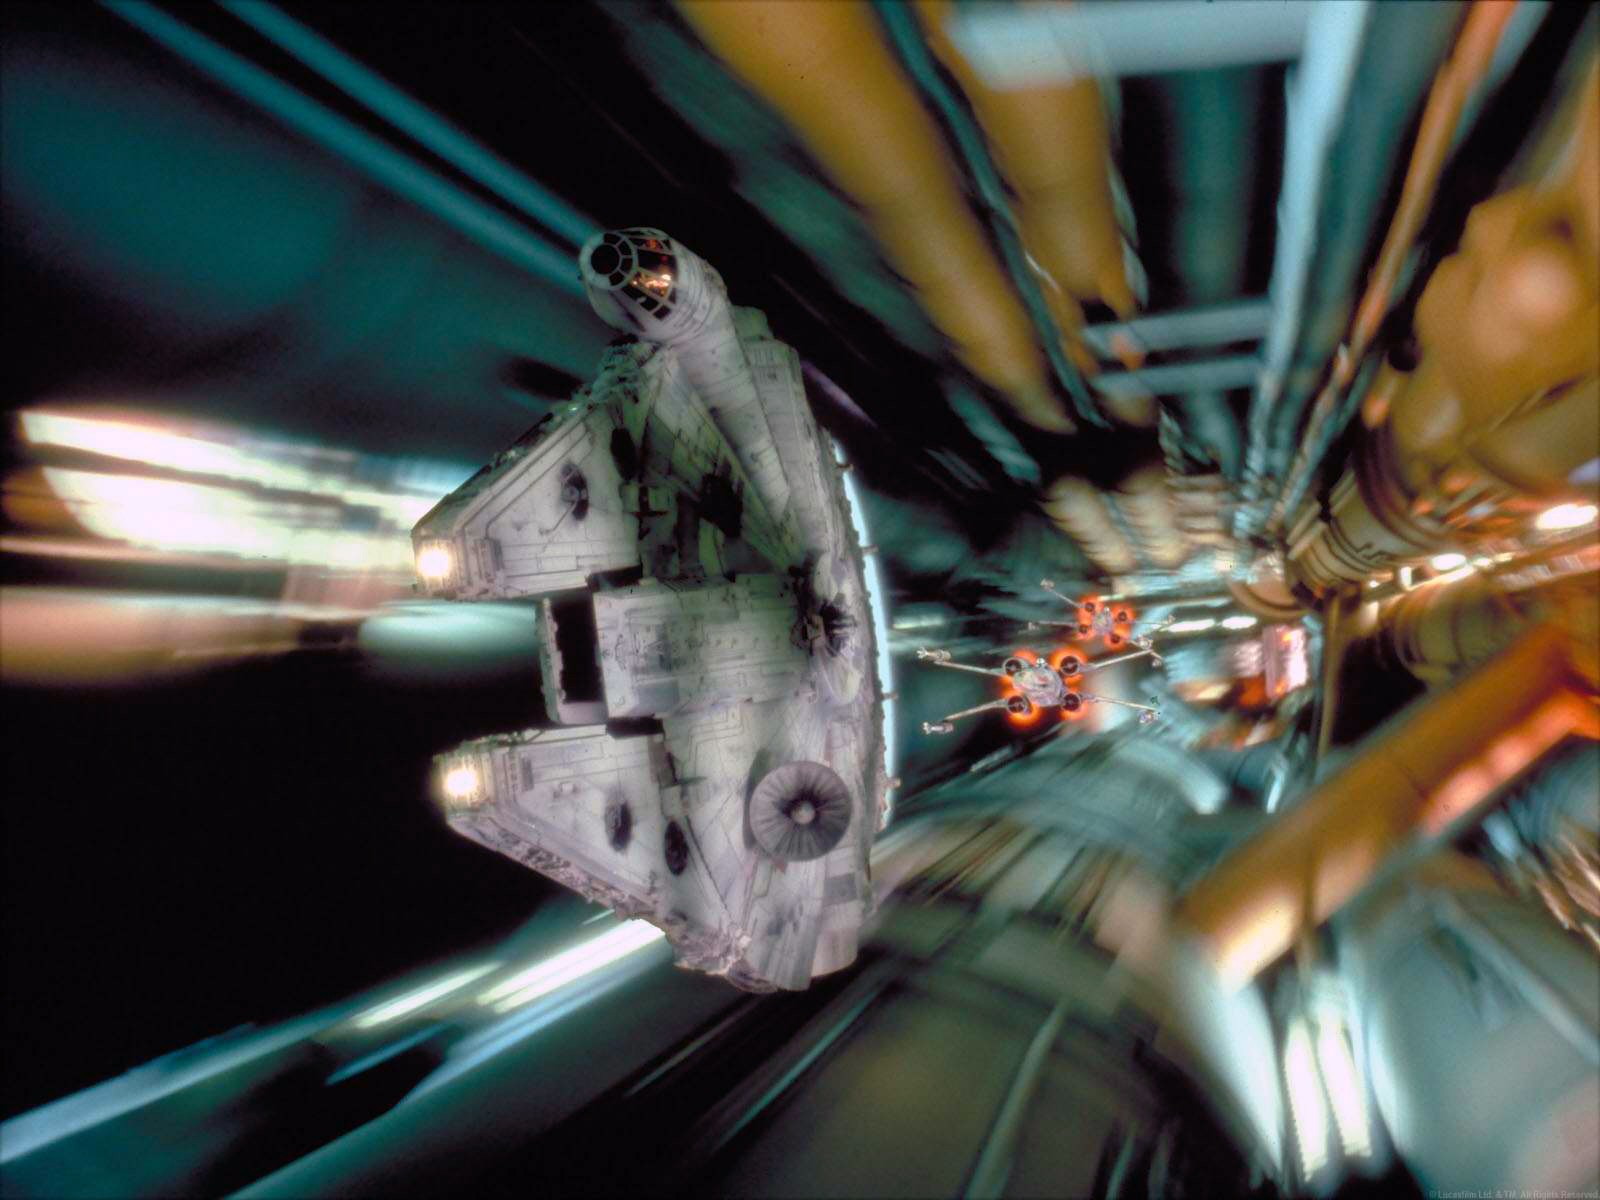 http://images.wikia.com/starwars/images/e/ec/DS2_attack_run.jpg